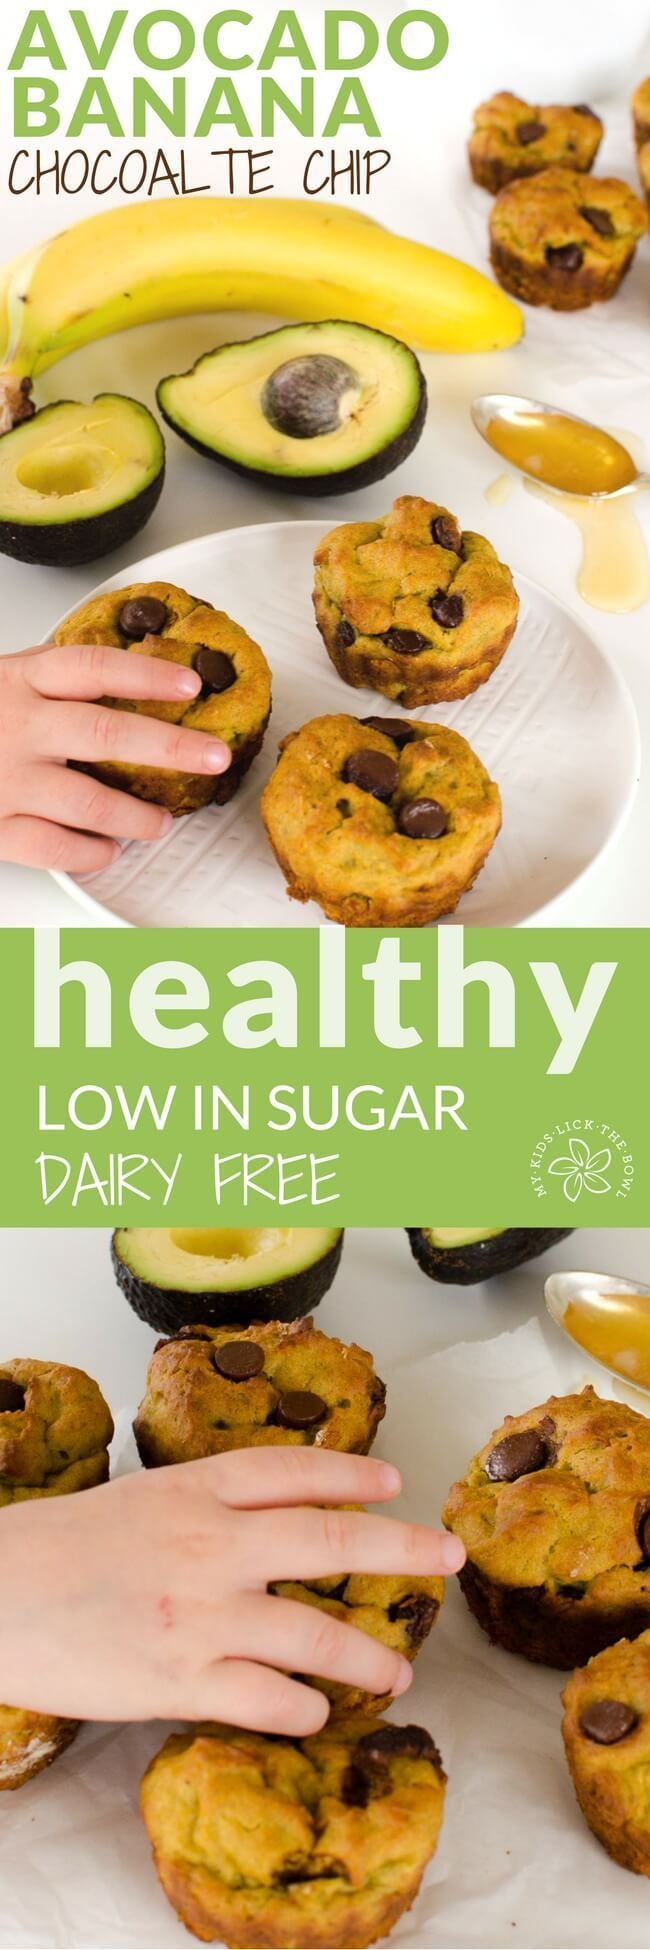 Avocado banana muffin recipe, chocolate chip, healthy, dairy free, low sugar, for kids, healthy snack, kids in the kitchen cooking with kids